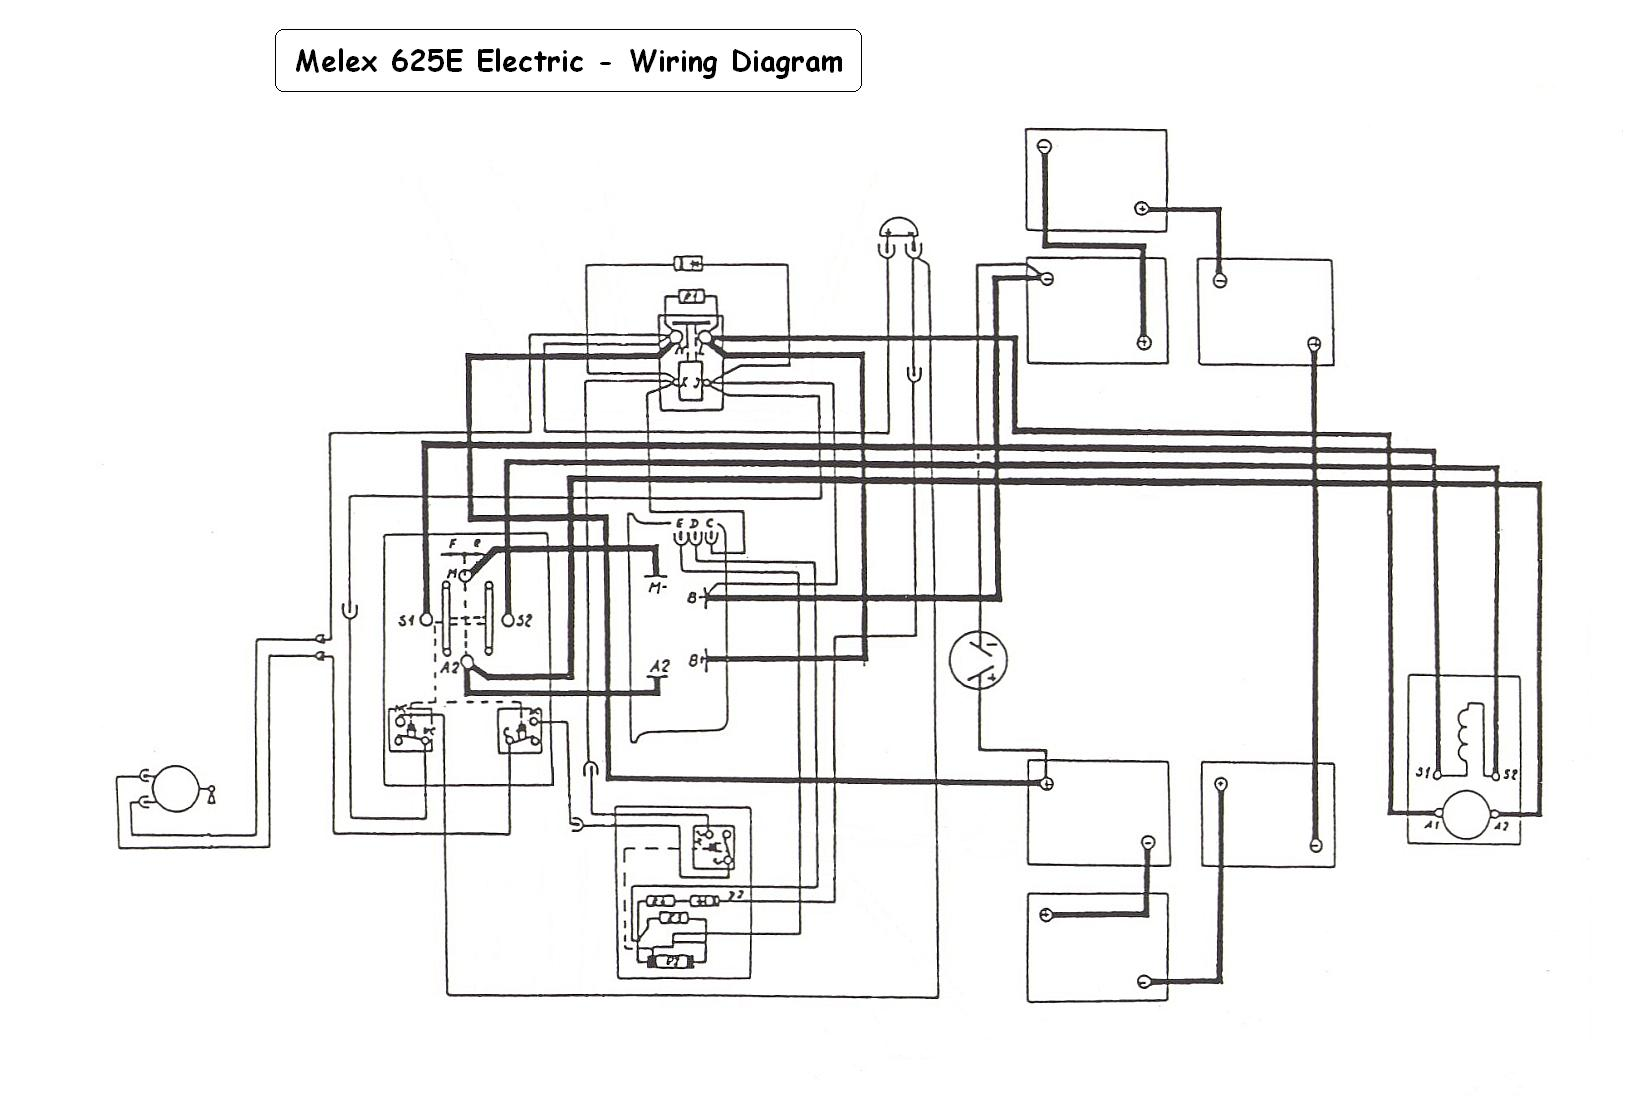 hight resolution of melex battery wiring diagram wiring diagram expert 1999 melex golf cart battery wiring diagram